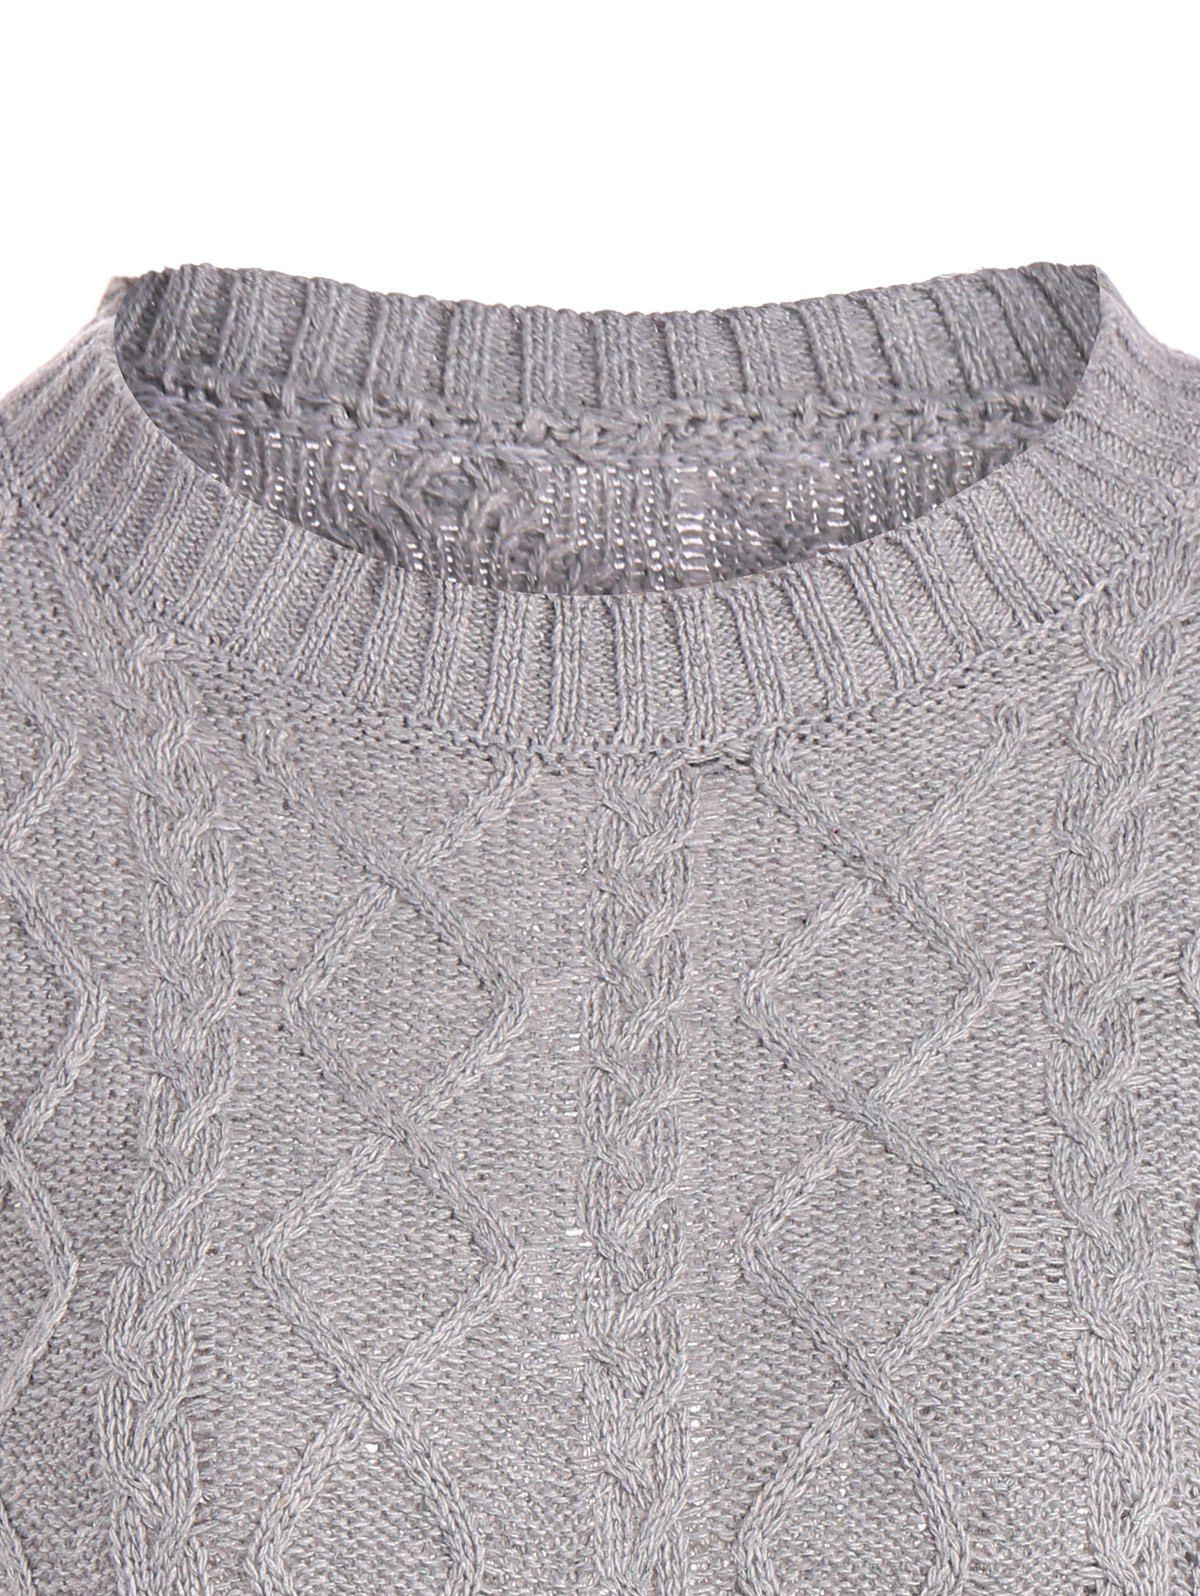 Cable Knit Pullover Sweater - GRAY XL